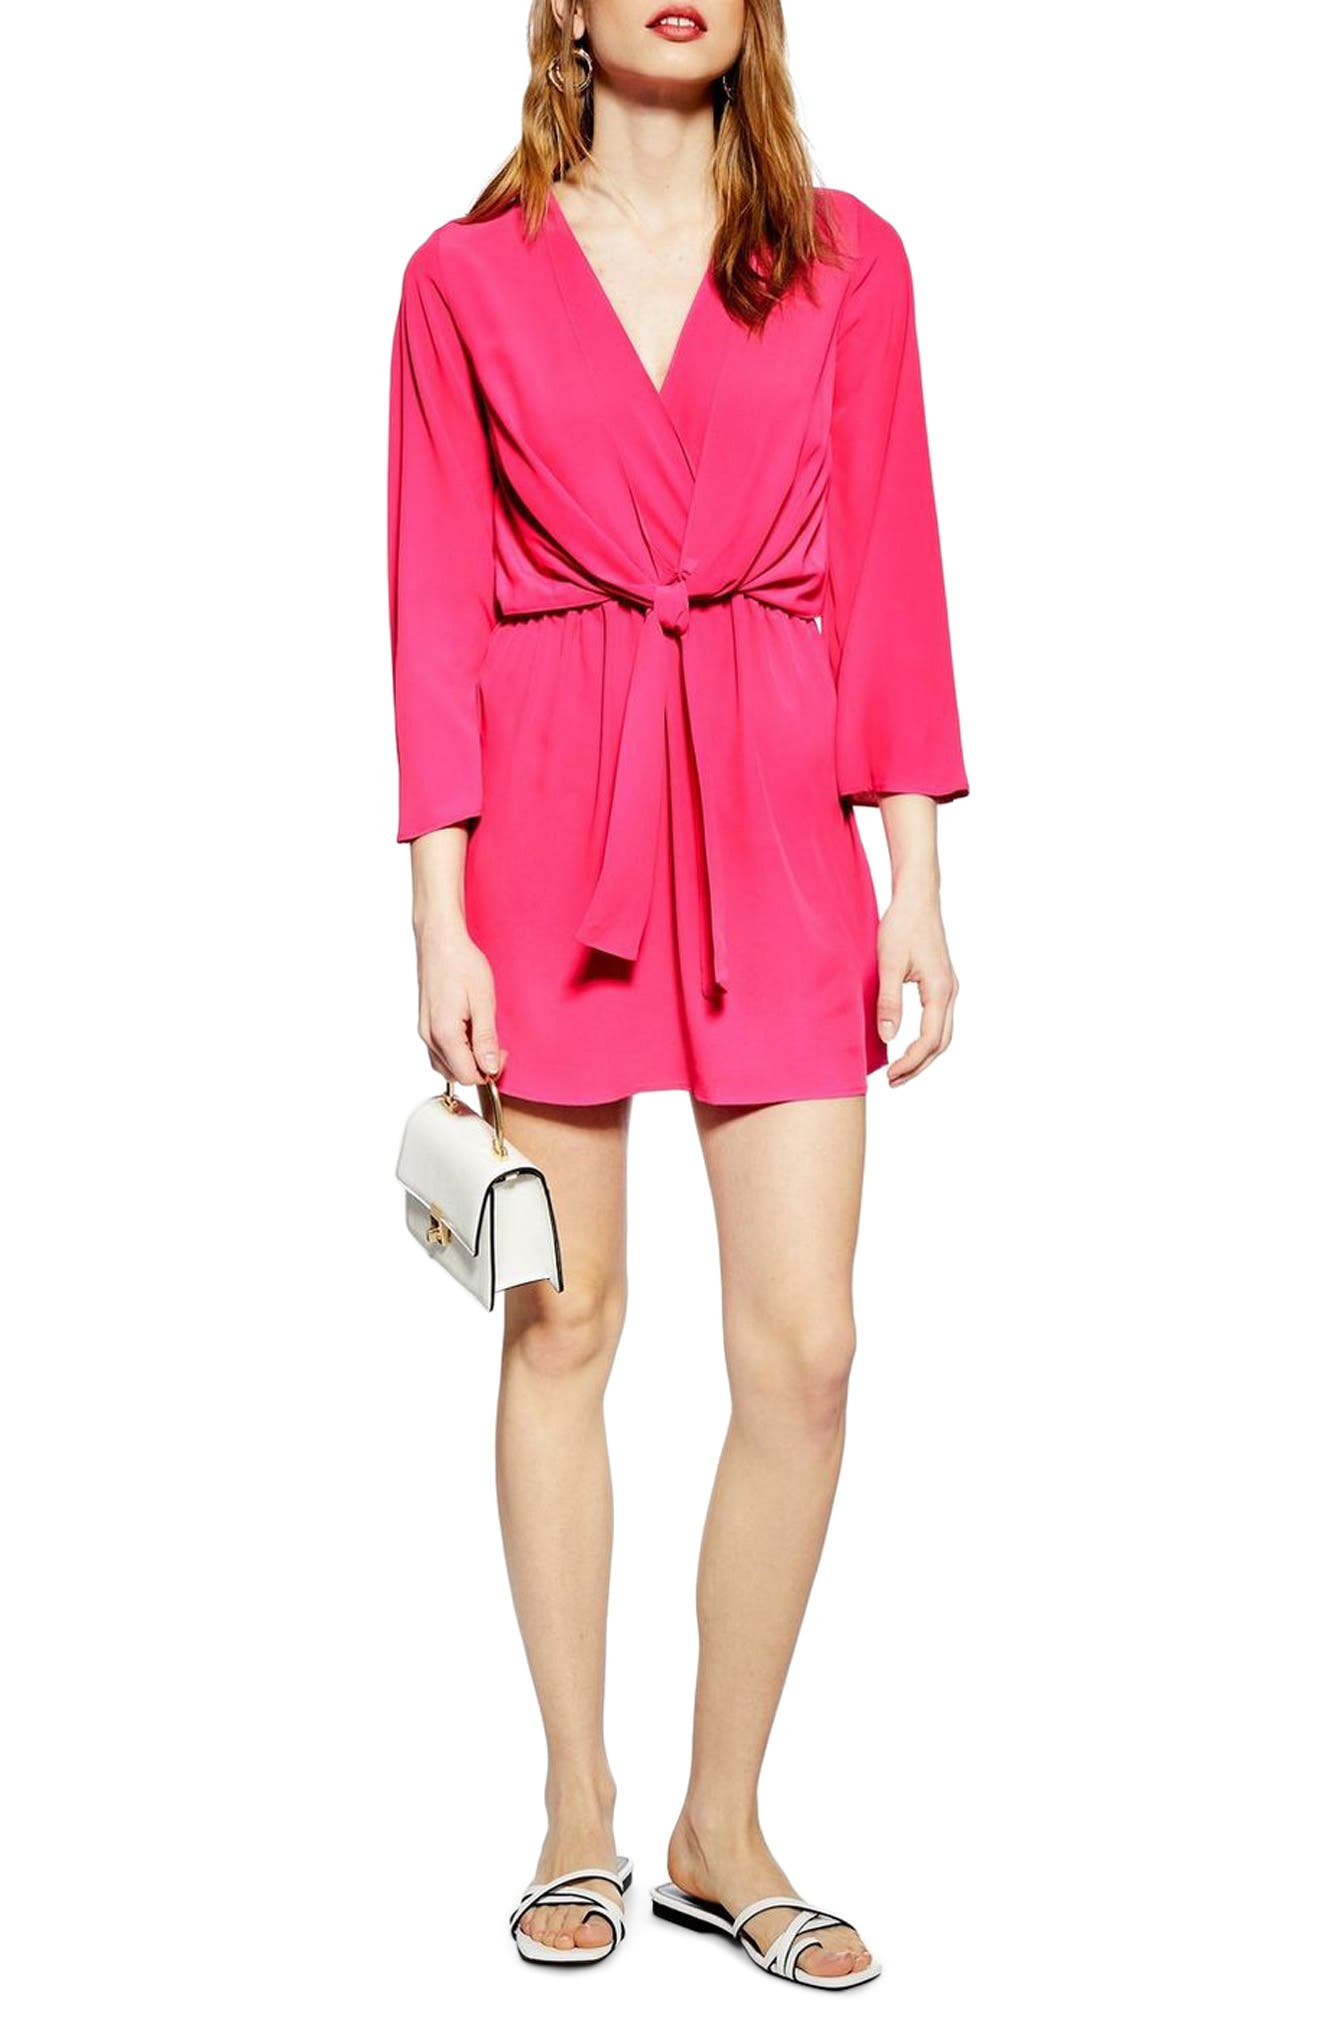 Topshop Tiffany Knot Minidress Discount